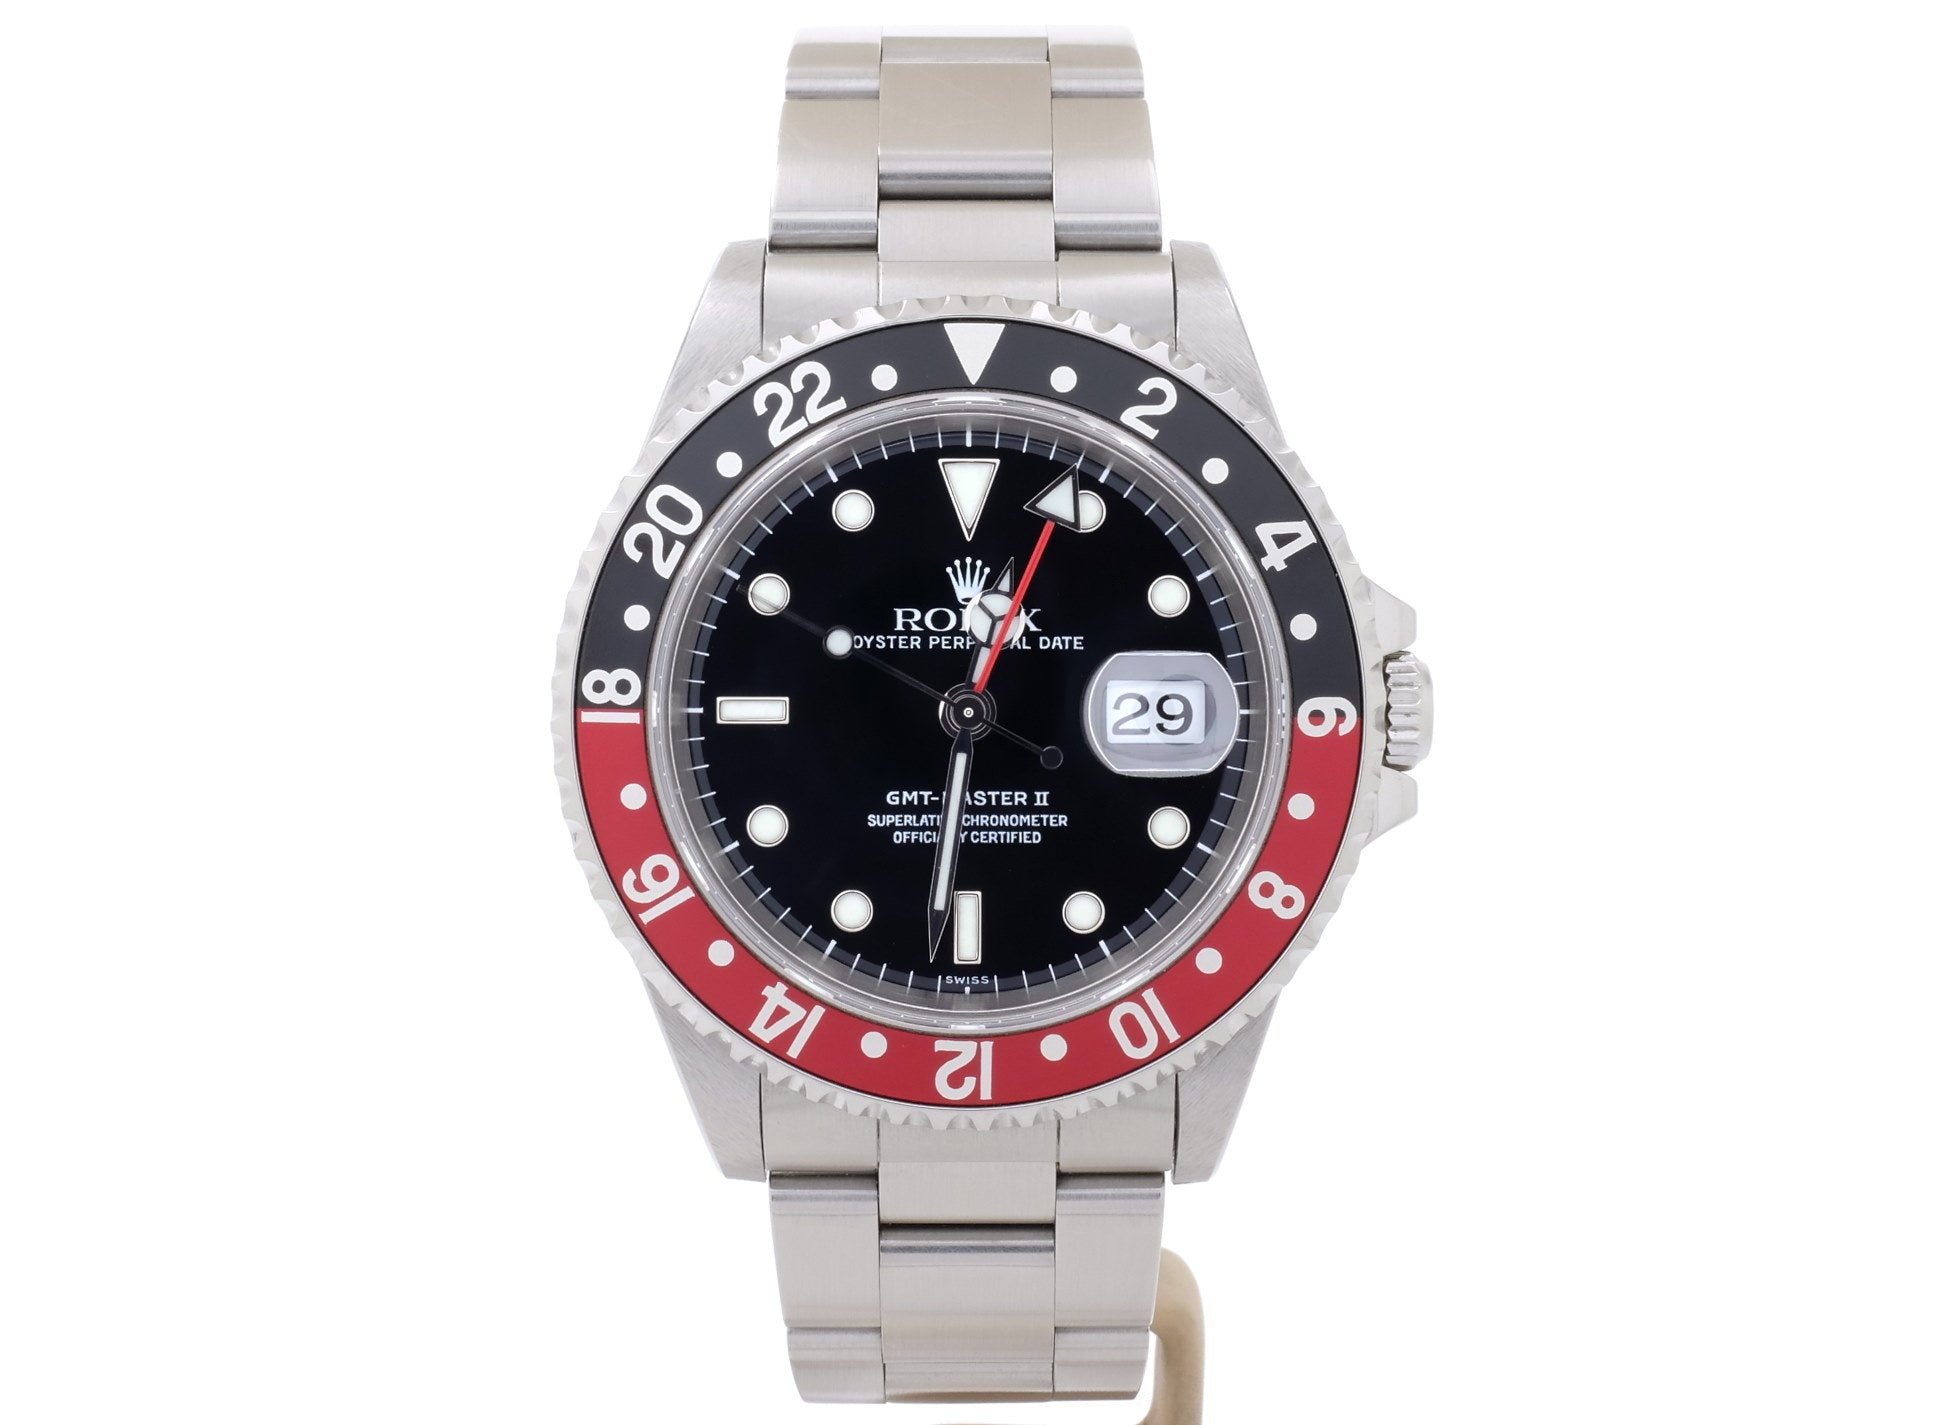 Coke-Bezel Rolex GMT-MASTER II Model 16710 in Superb Condition!